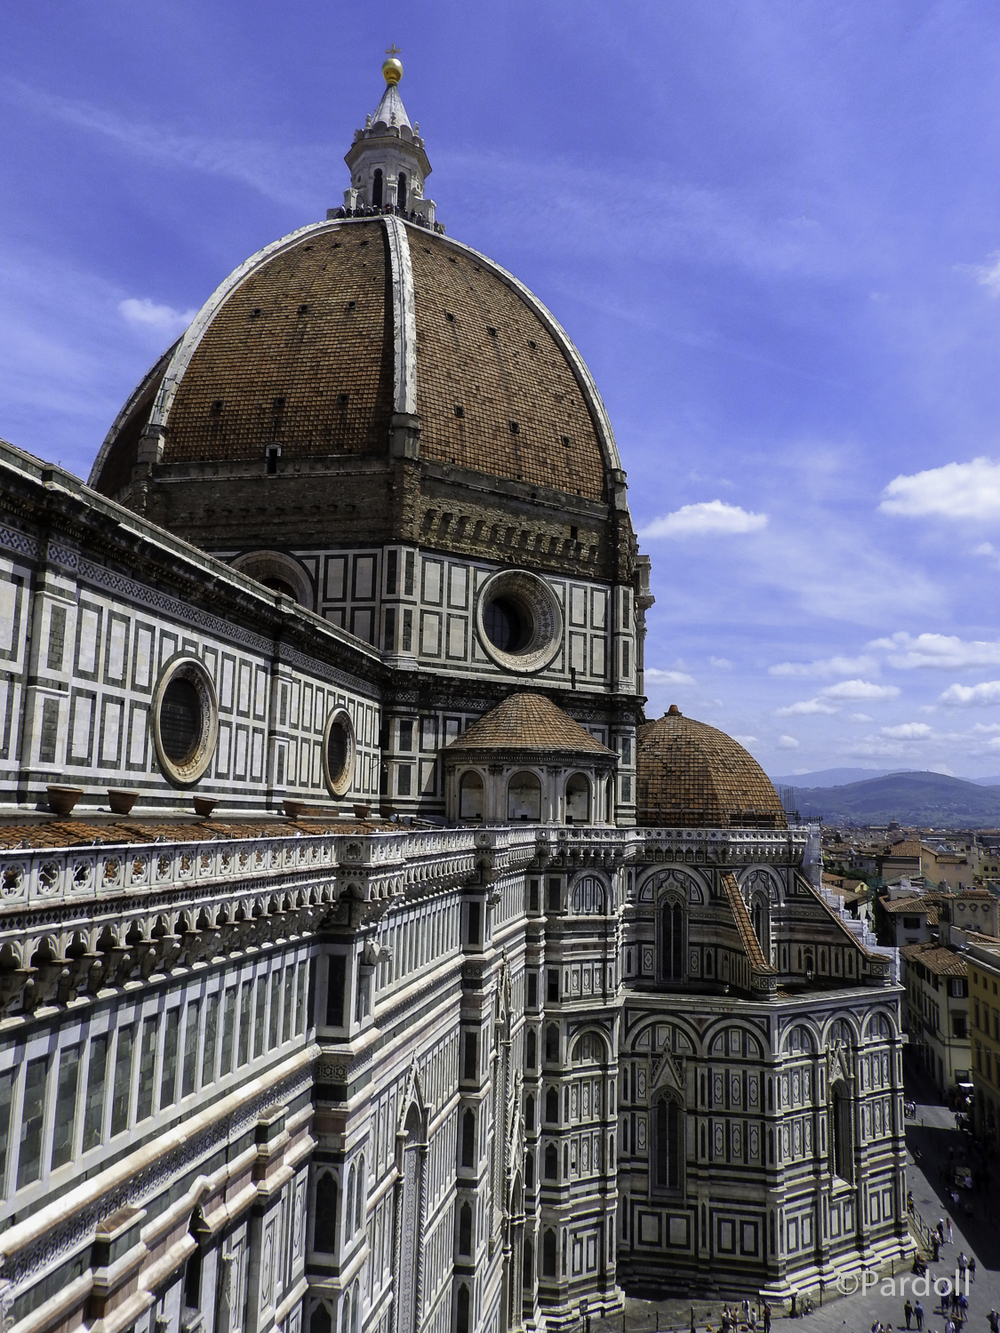 The Duomo from the bell tower.